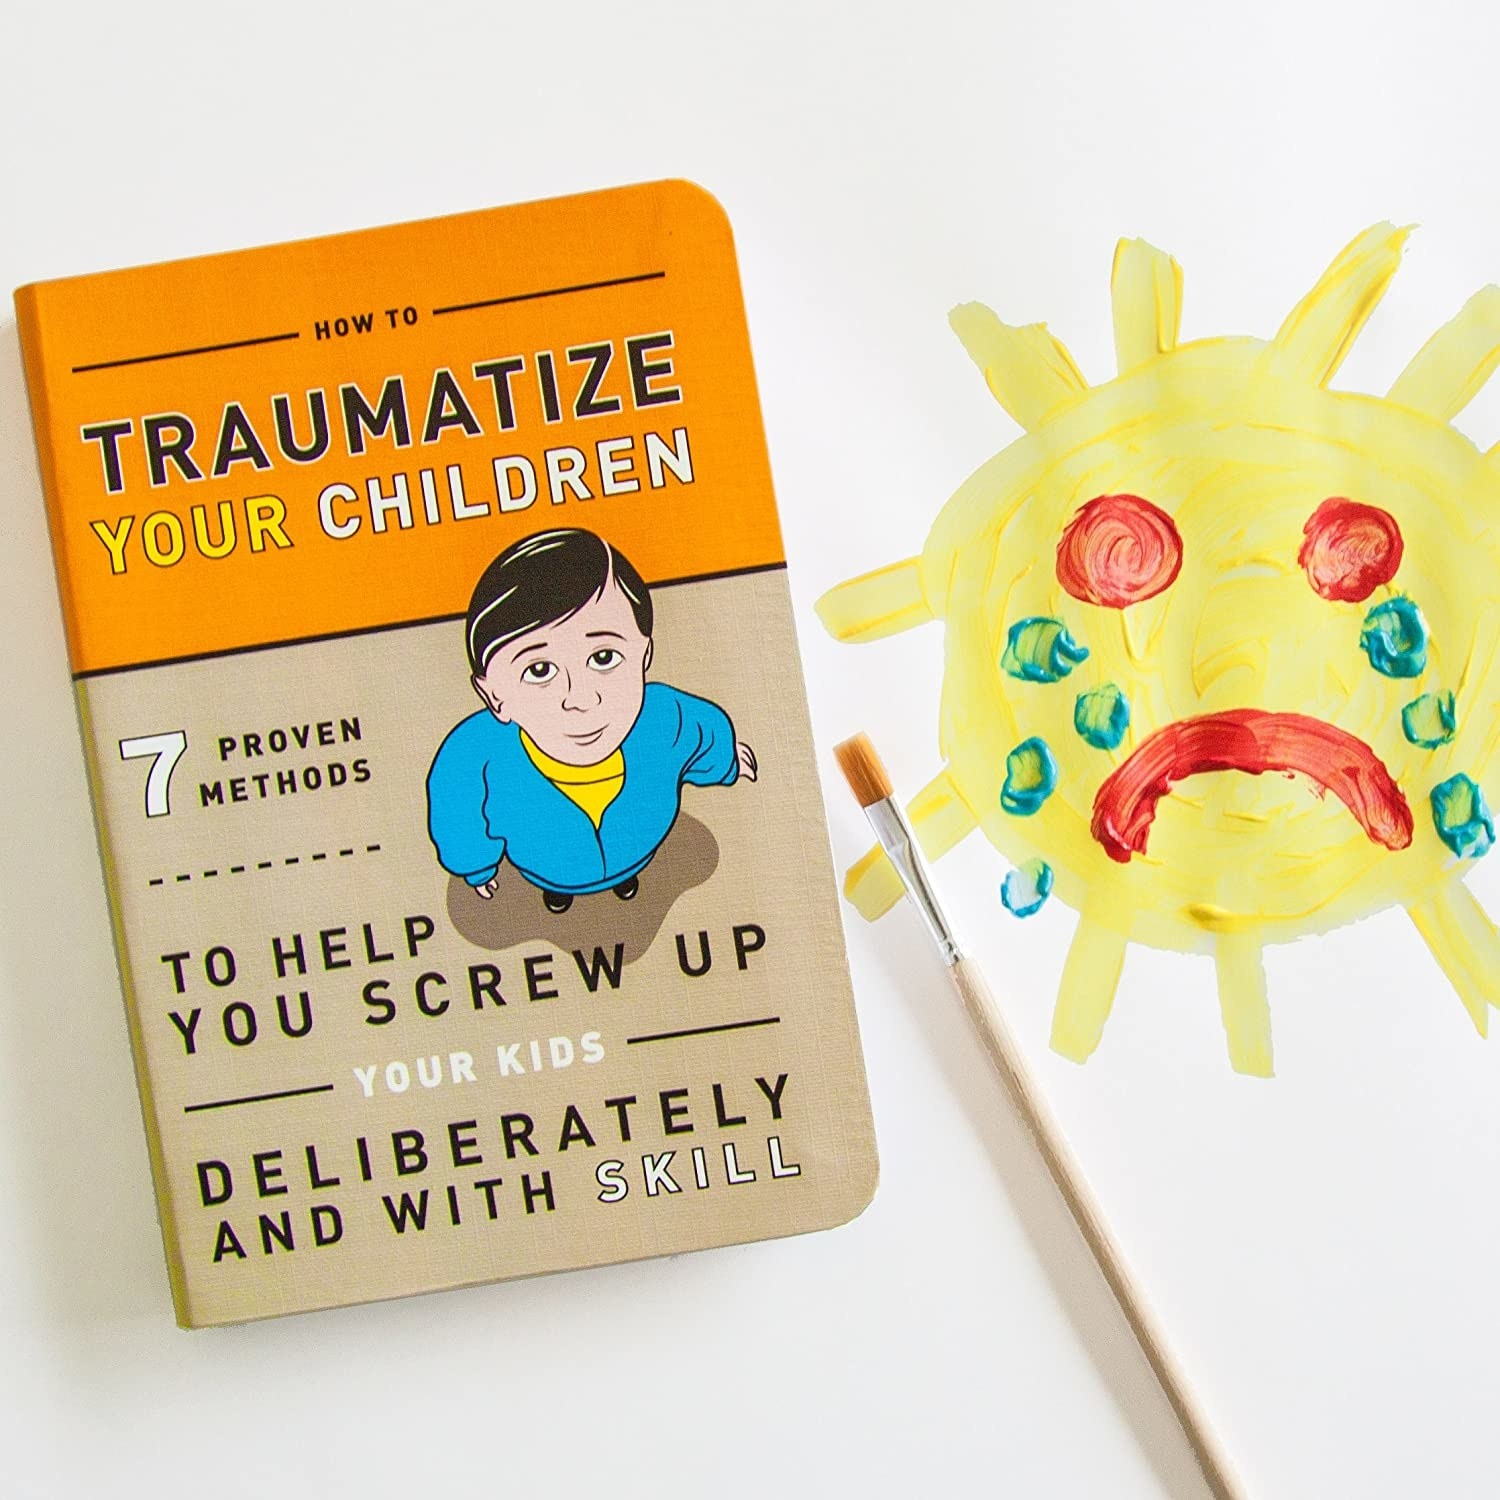 The cover of How to Traumatize Your Children next to a child-like painting of a sad sun